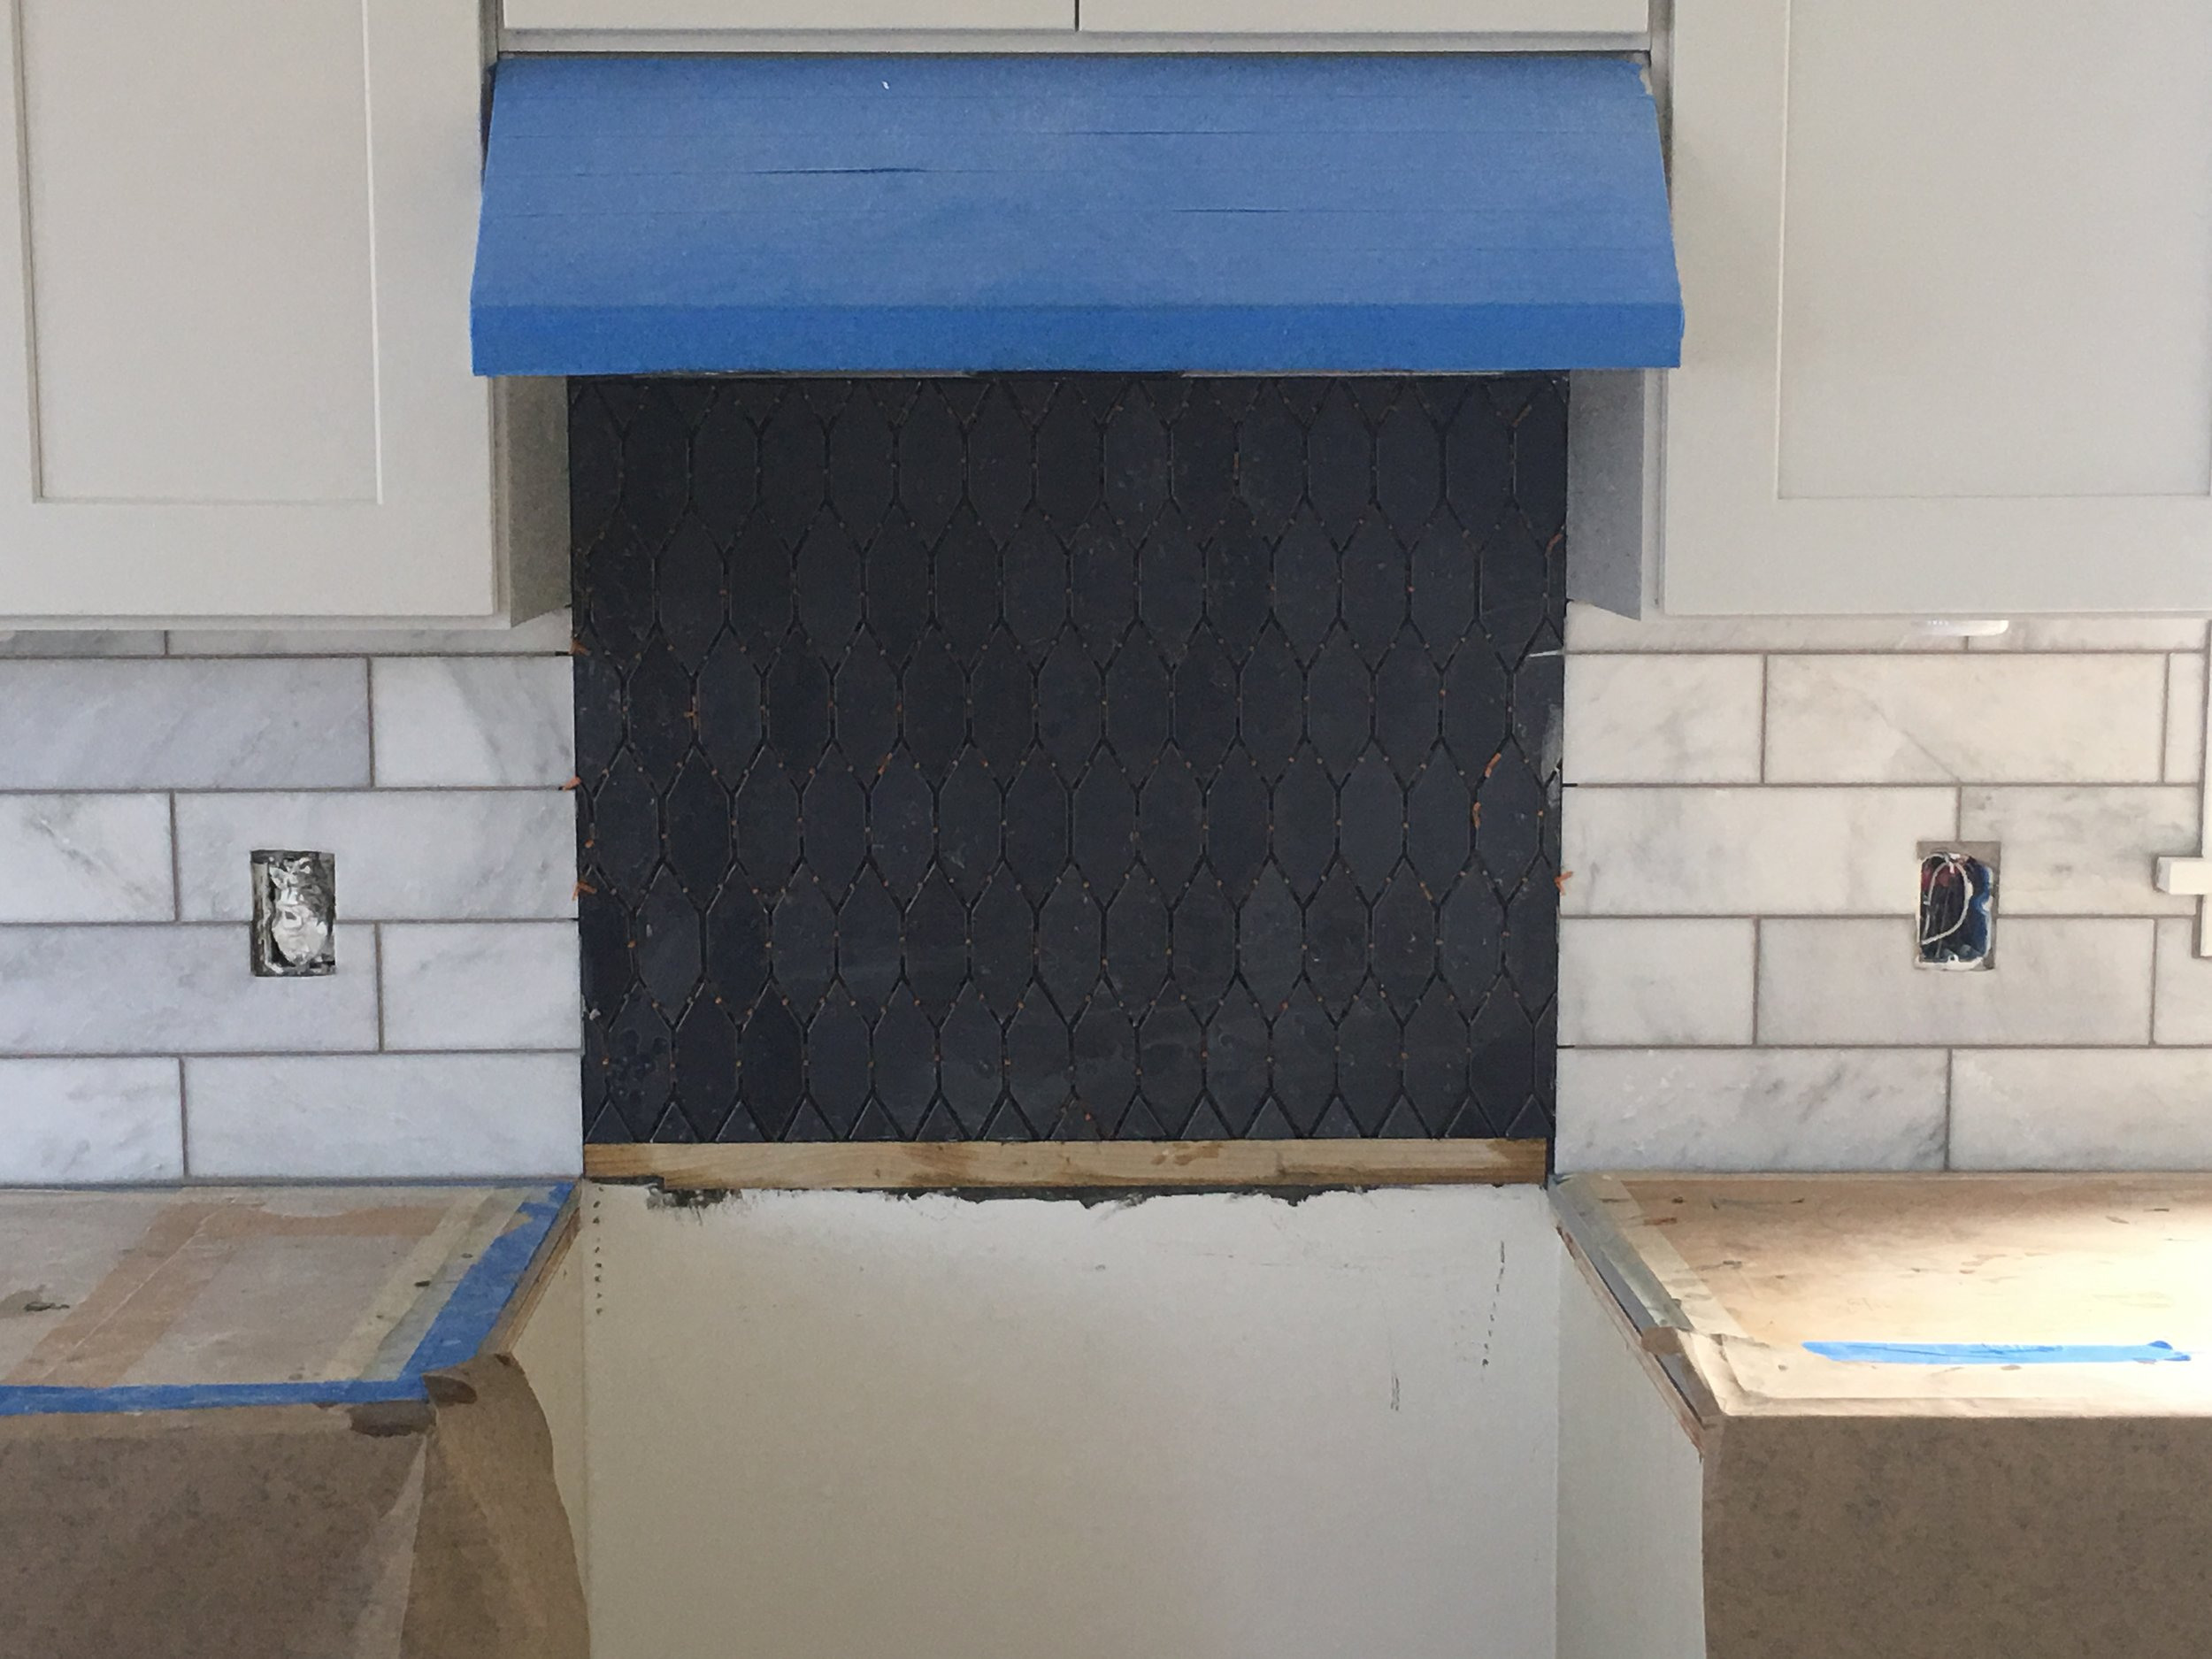 Above you'll see the two tiles laid out and ready to be installed. And, here is the backsplash laid in. The marble tile has been grouted with Oyster Gray grout. We'll grout the Heath tile tomorrow with the same grout. It just needs to set overnight.